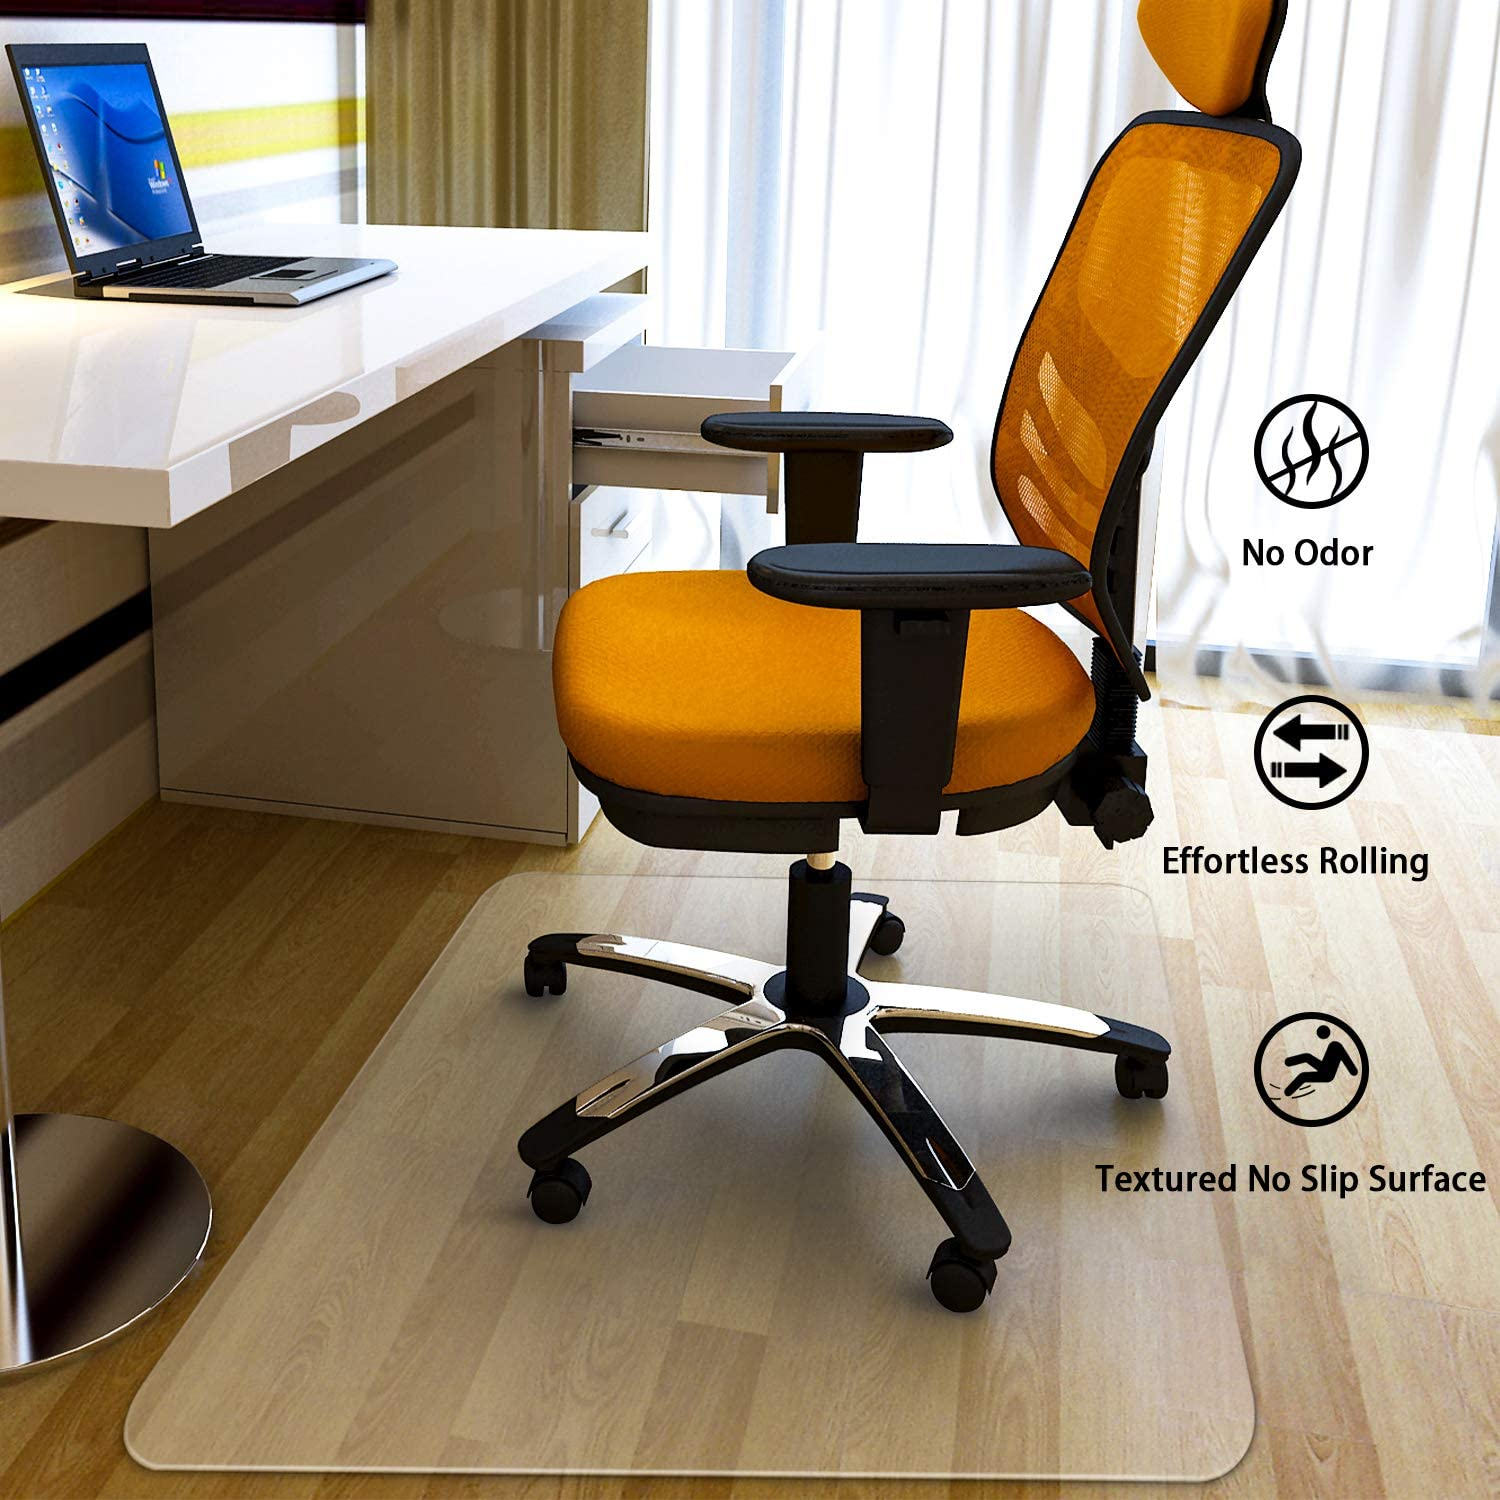 MATDOM Chair Mat for Wood Floor at Home and Office Heavy Duty Transparent Solid Multiple Size Eco-Friendly, 1 16 Thick Rectangular